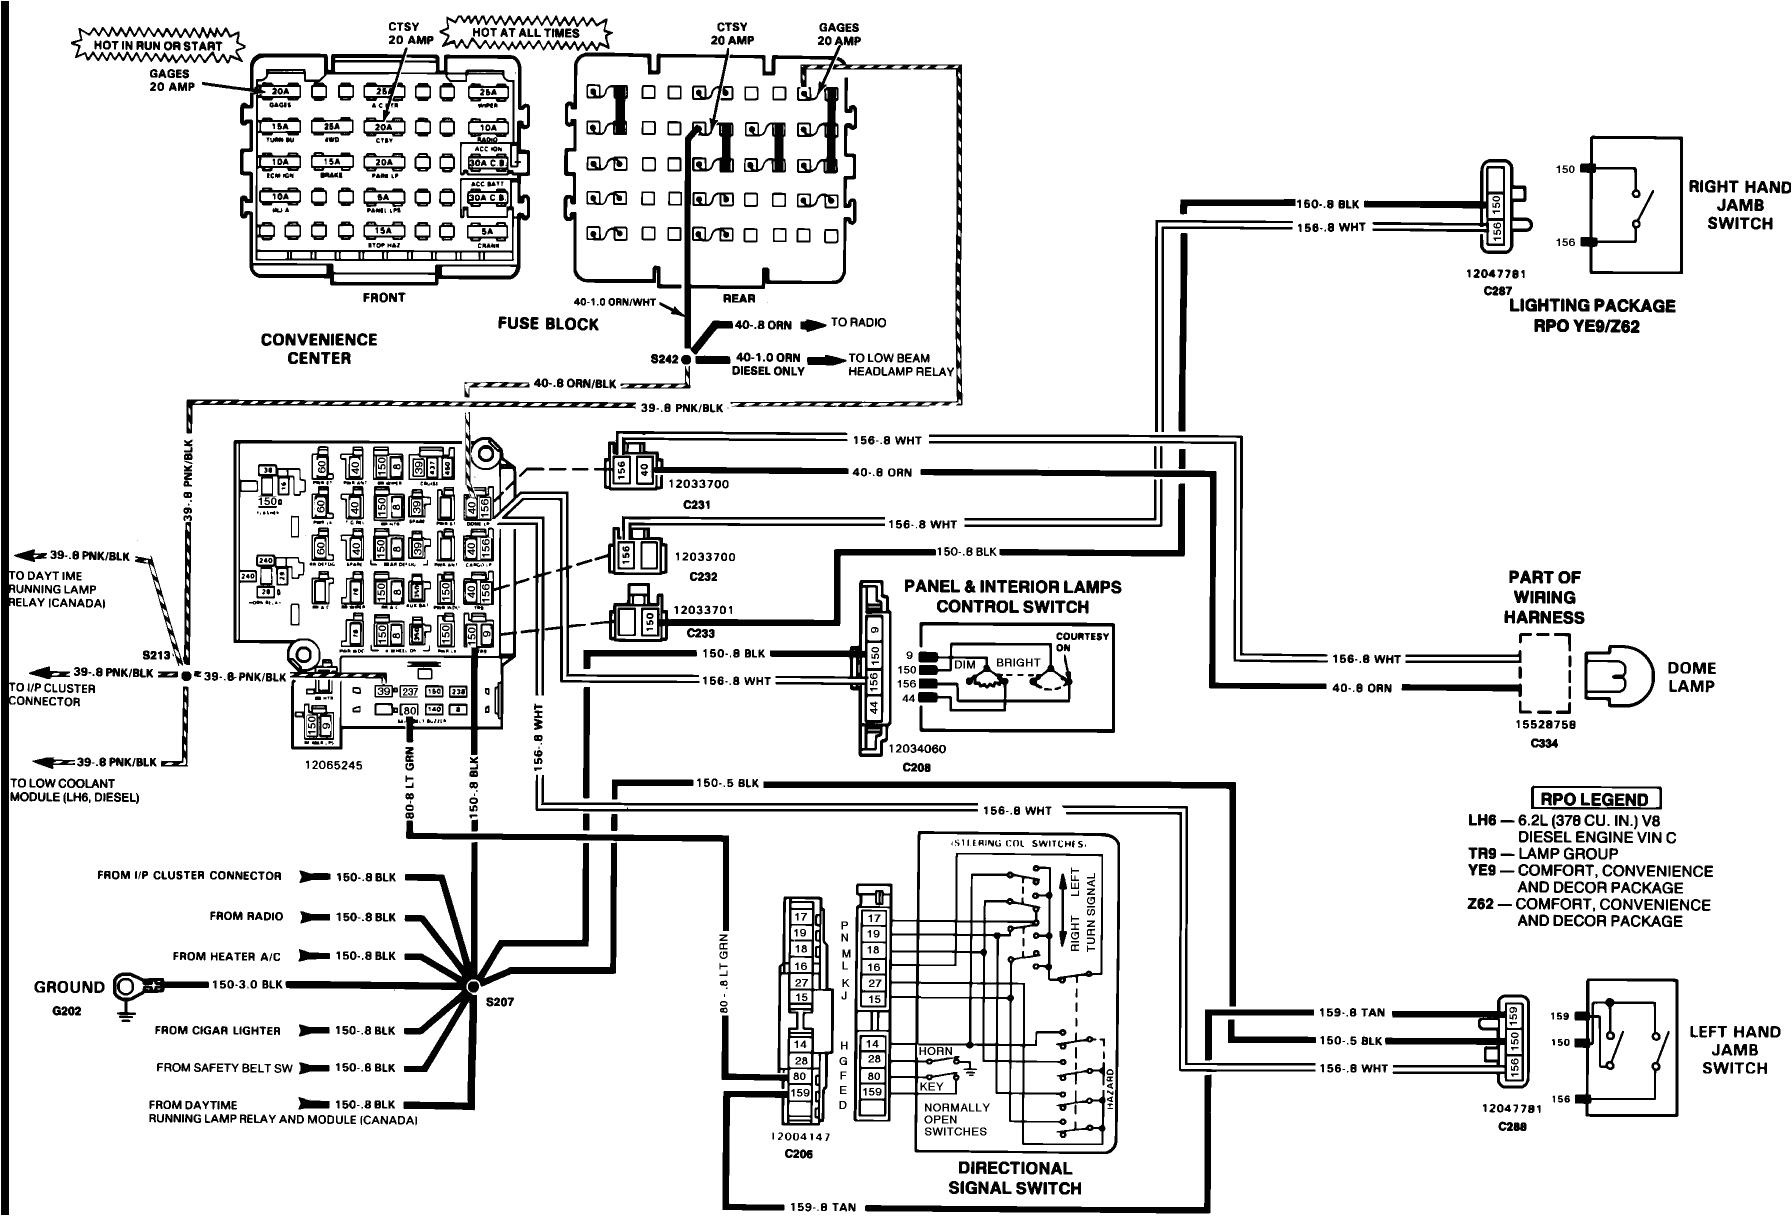 s15 wiring diagram schema diagram database wiring harness as well 1989 gmc s15 wiring harness moreover 1995